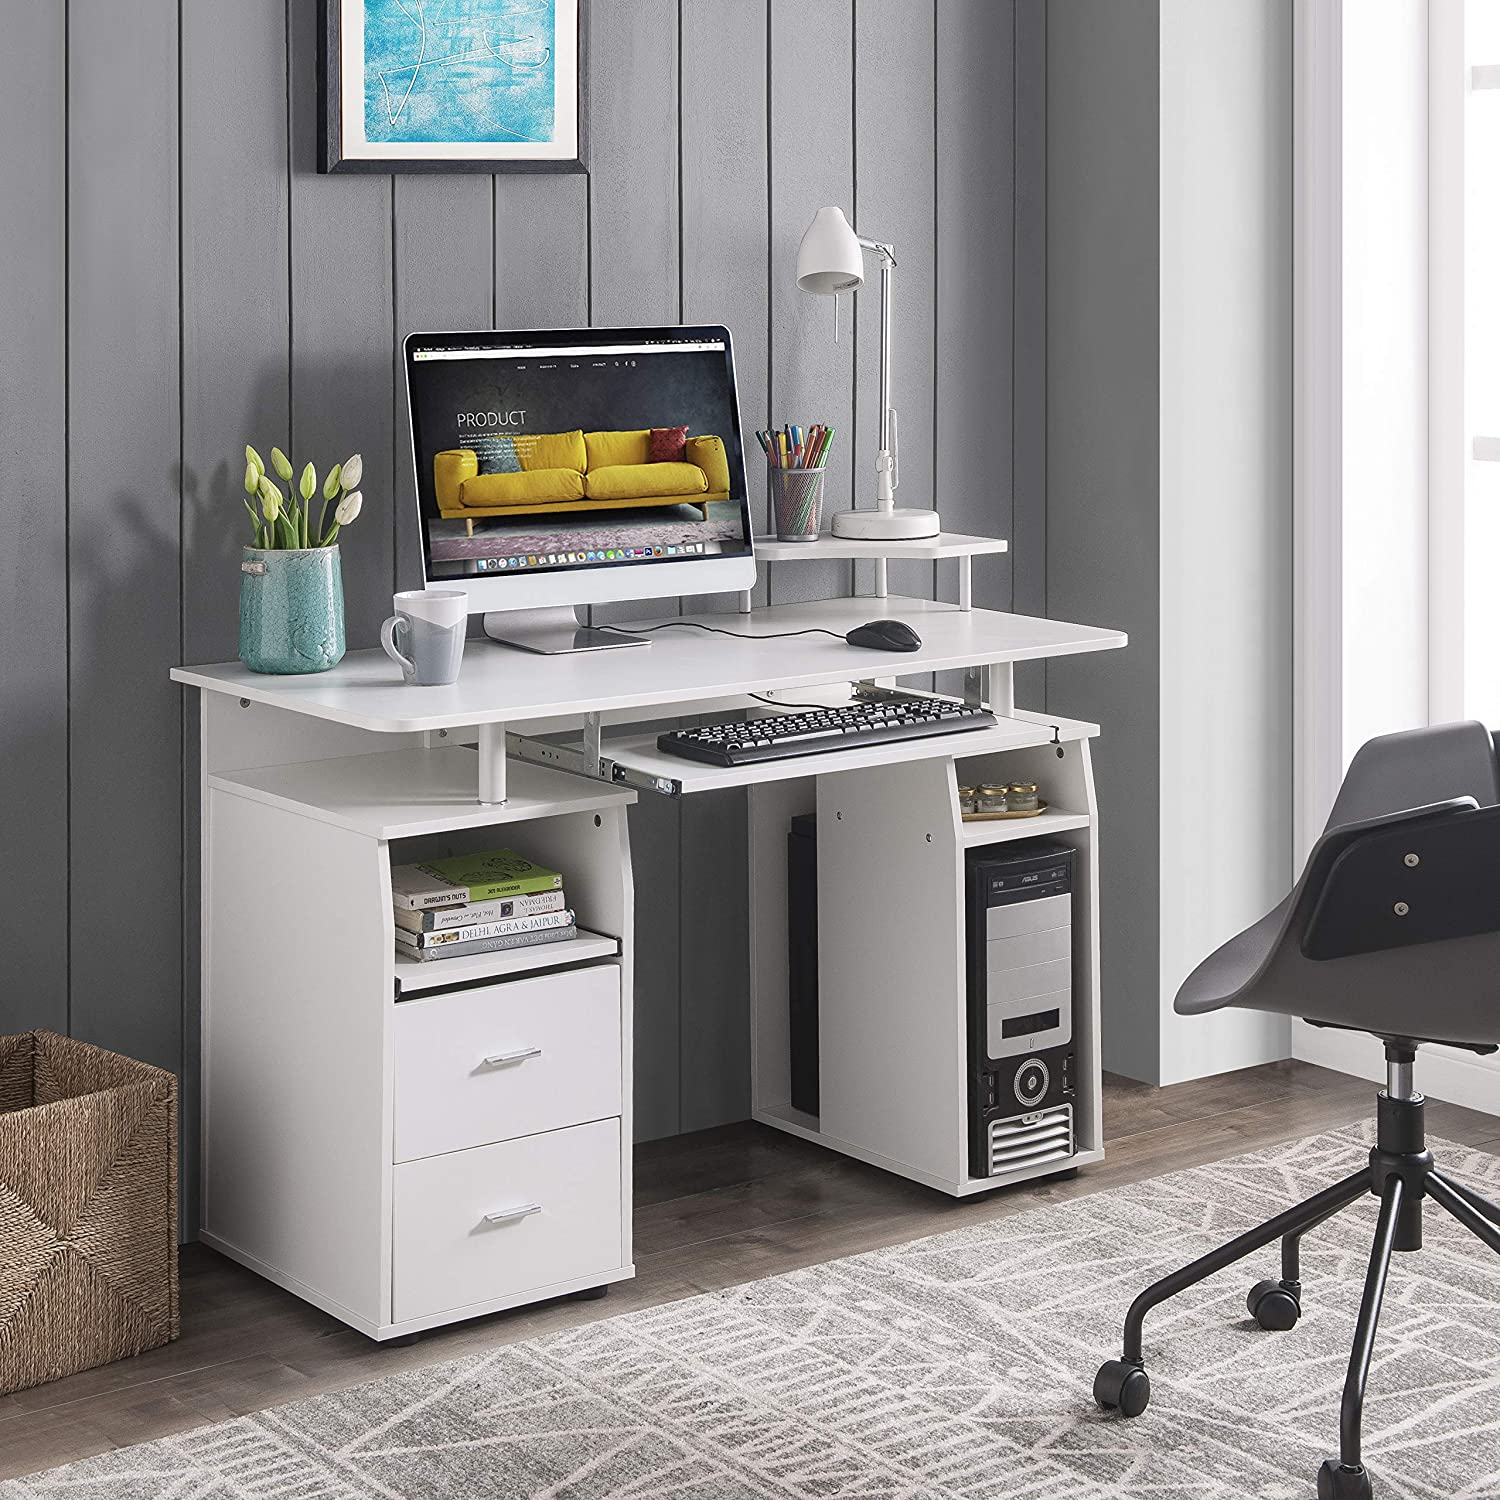 FURLKHY Computer Desk with Drawers, Wood Frame Home Office Desk with Spacious Desktop